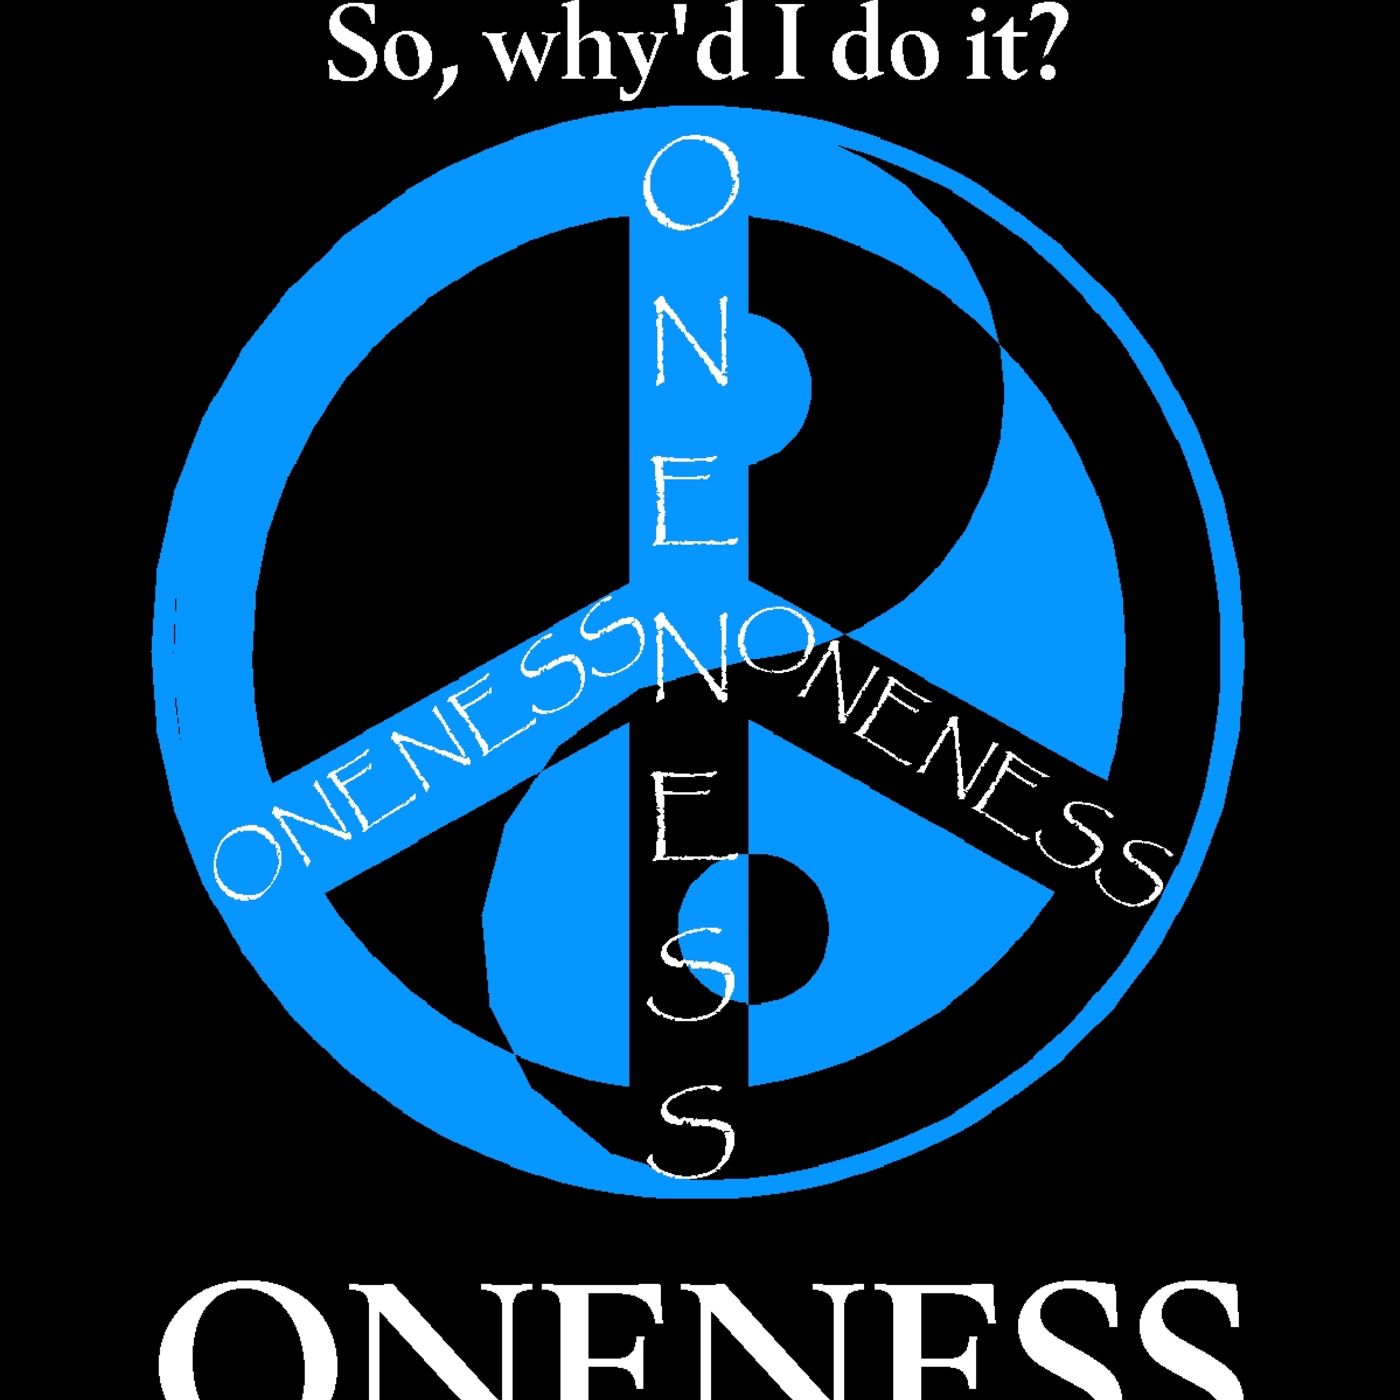 Episode #8: A Guide for Oneness, so why'd I do it?